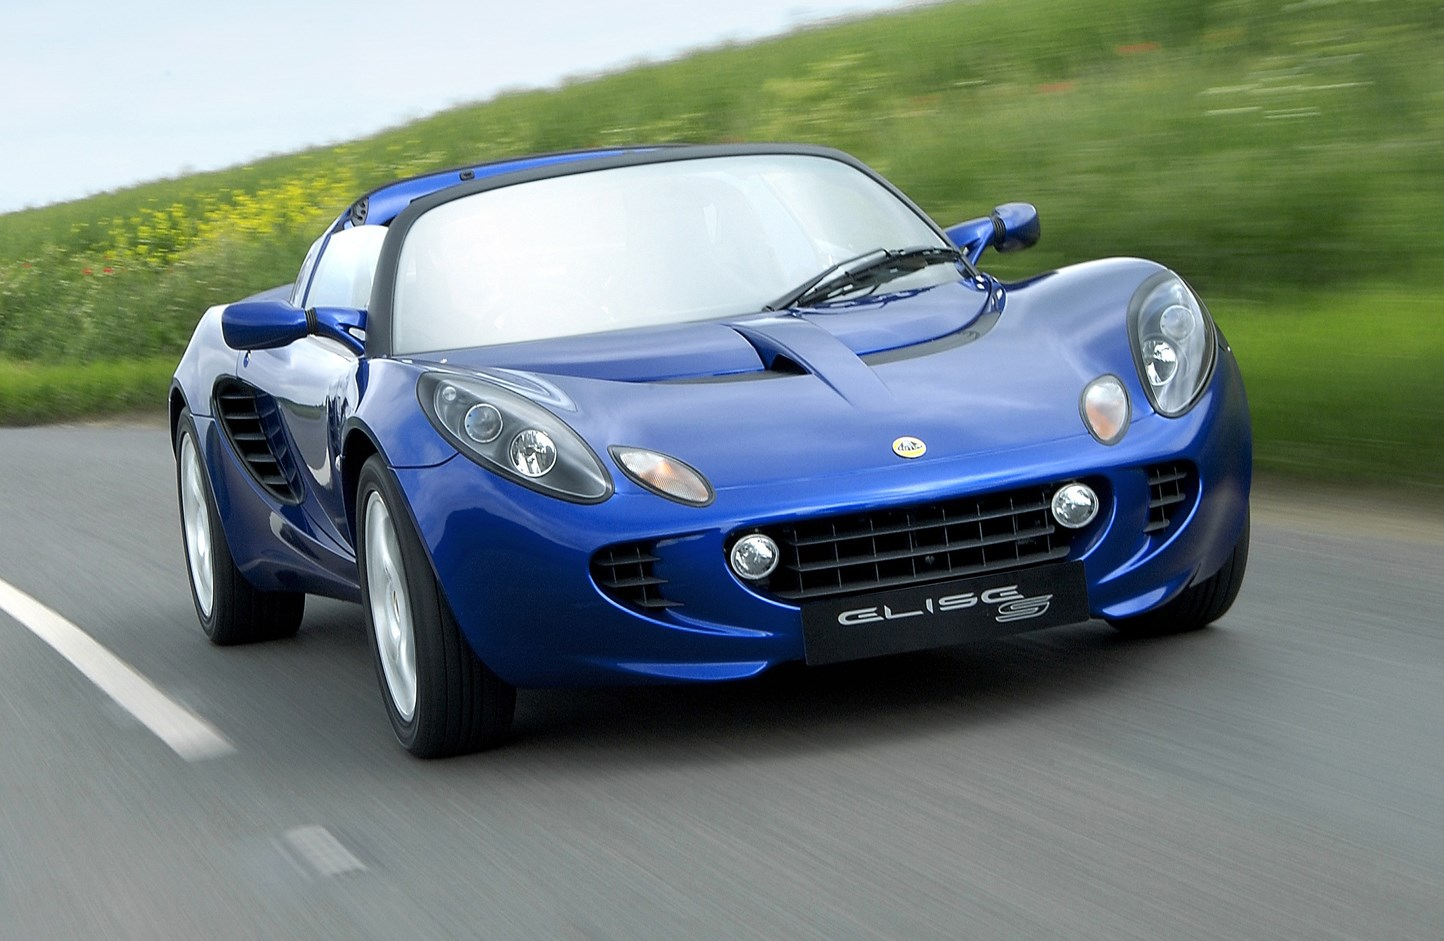 lotus elise convertible review 2000 parkers. Black Bedroom Furniture Sets. Home Design Ideas